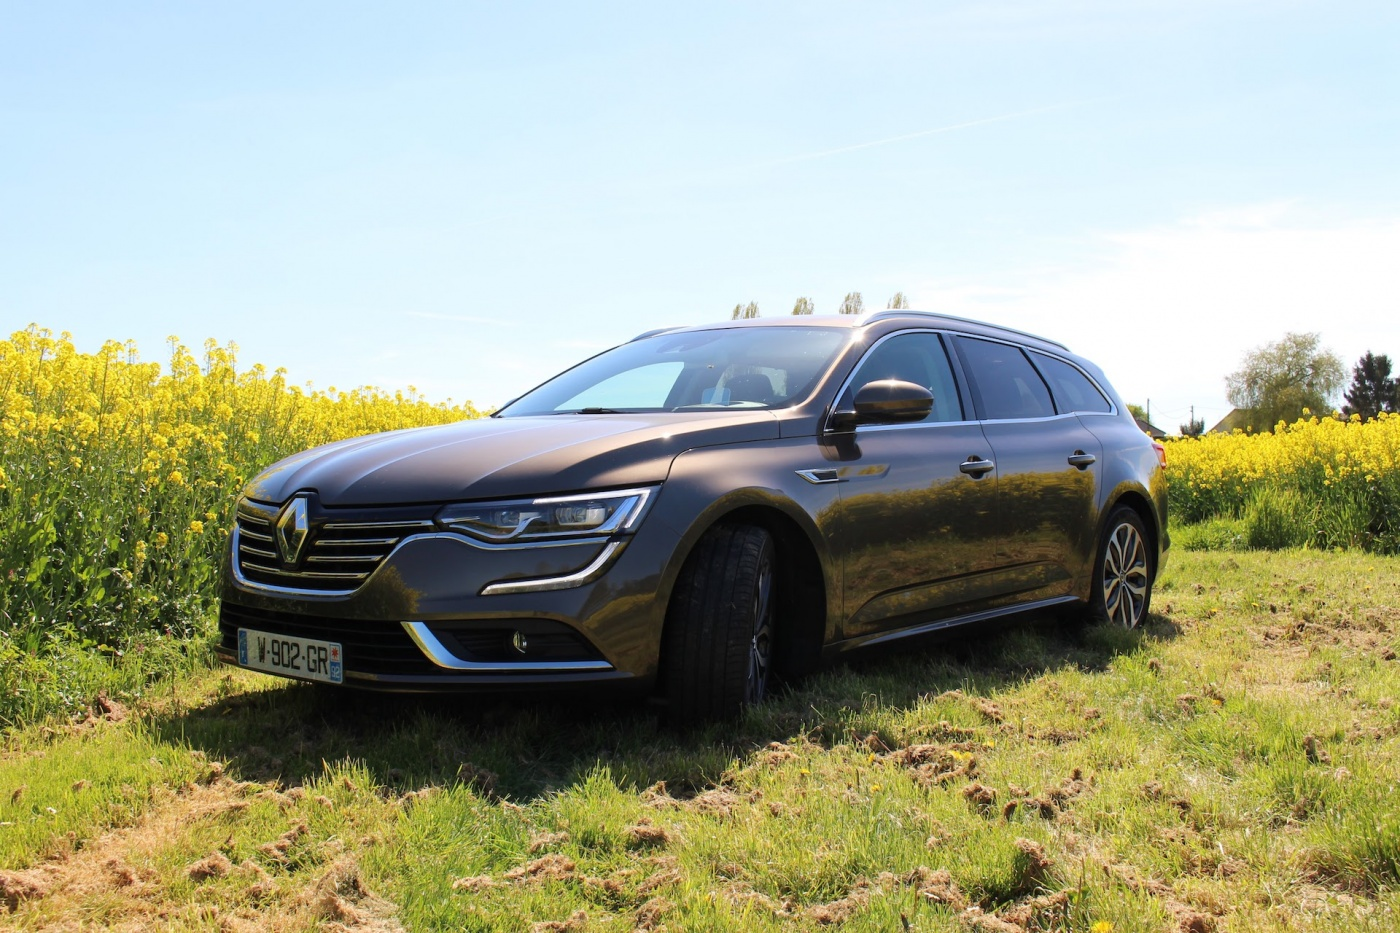 essai renault talisman estate tce 150 edc intens das familienauto. Black Bedroom Furniture Sets. Home Design Ideas